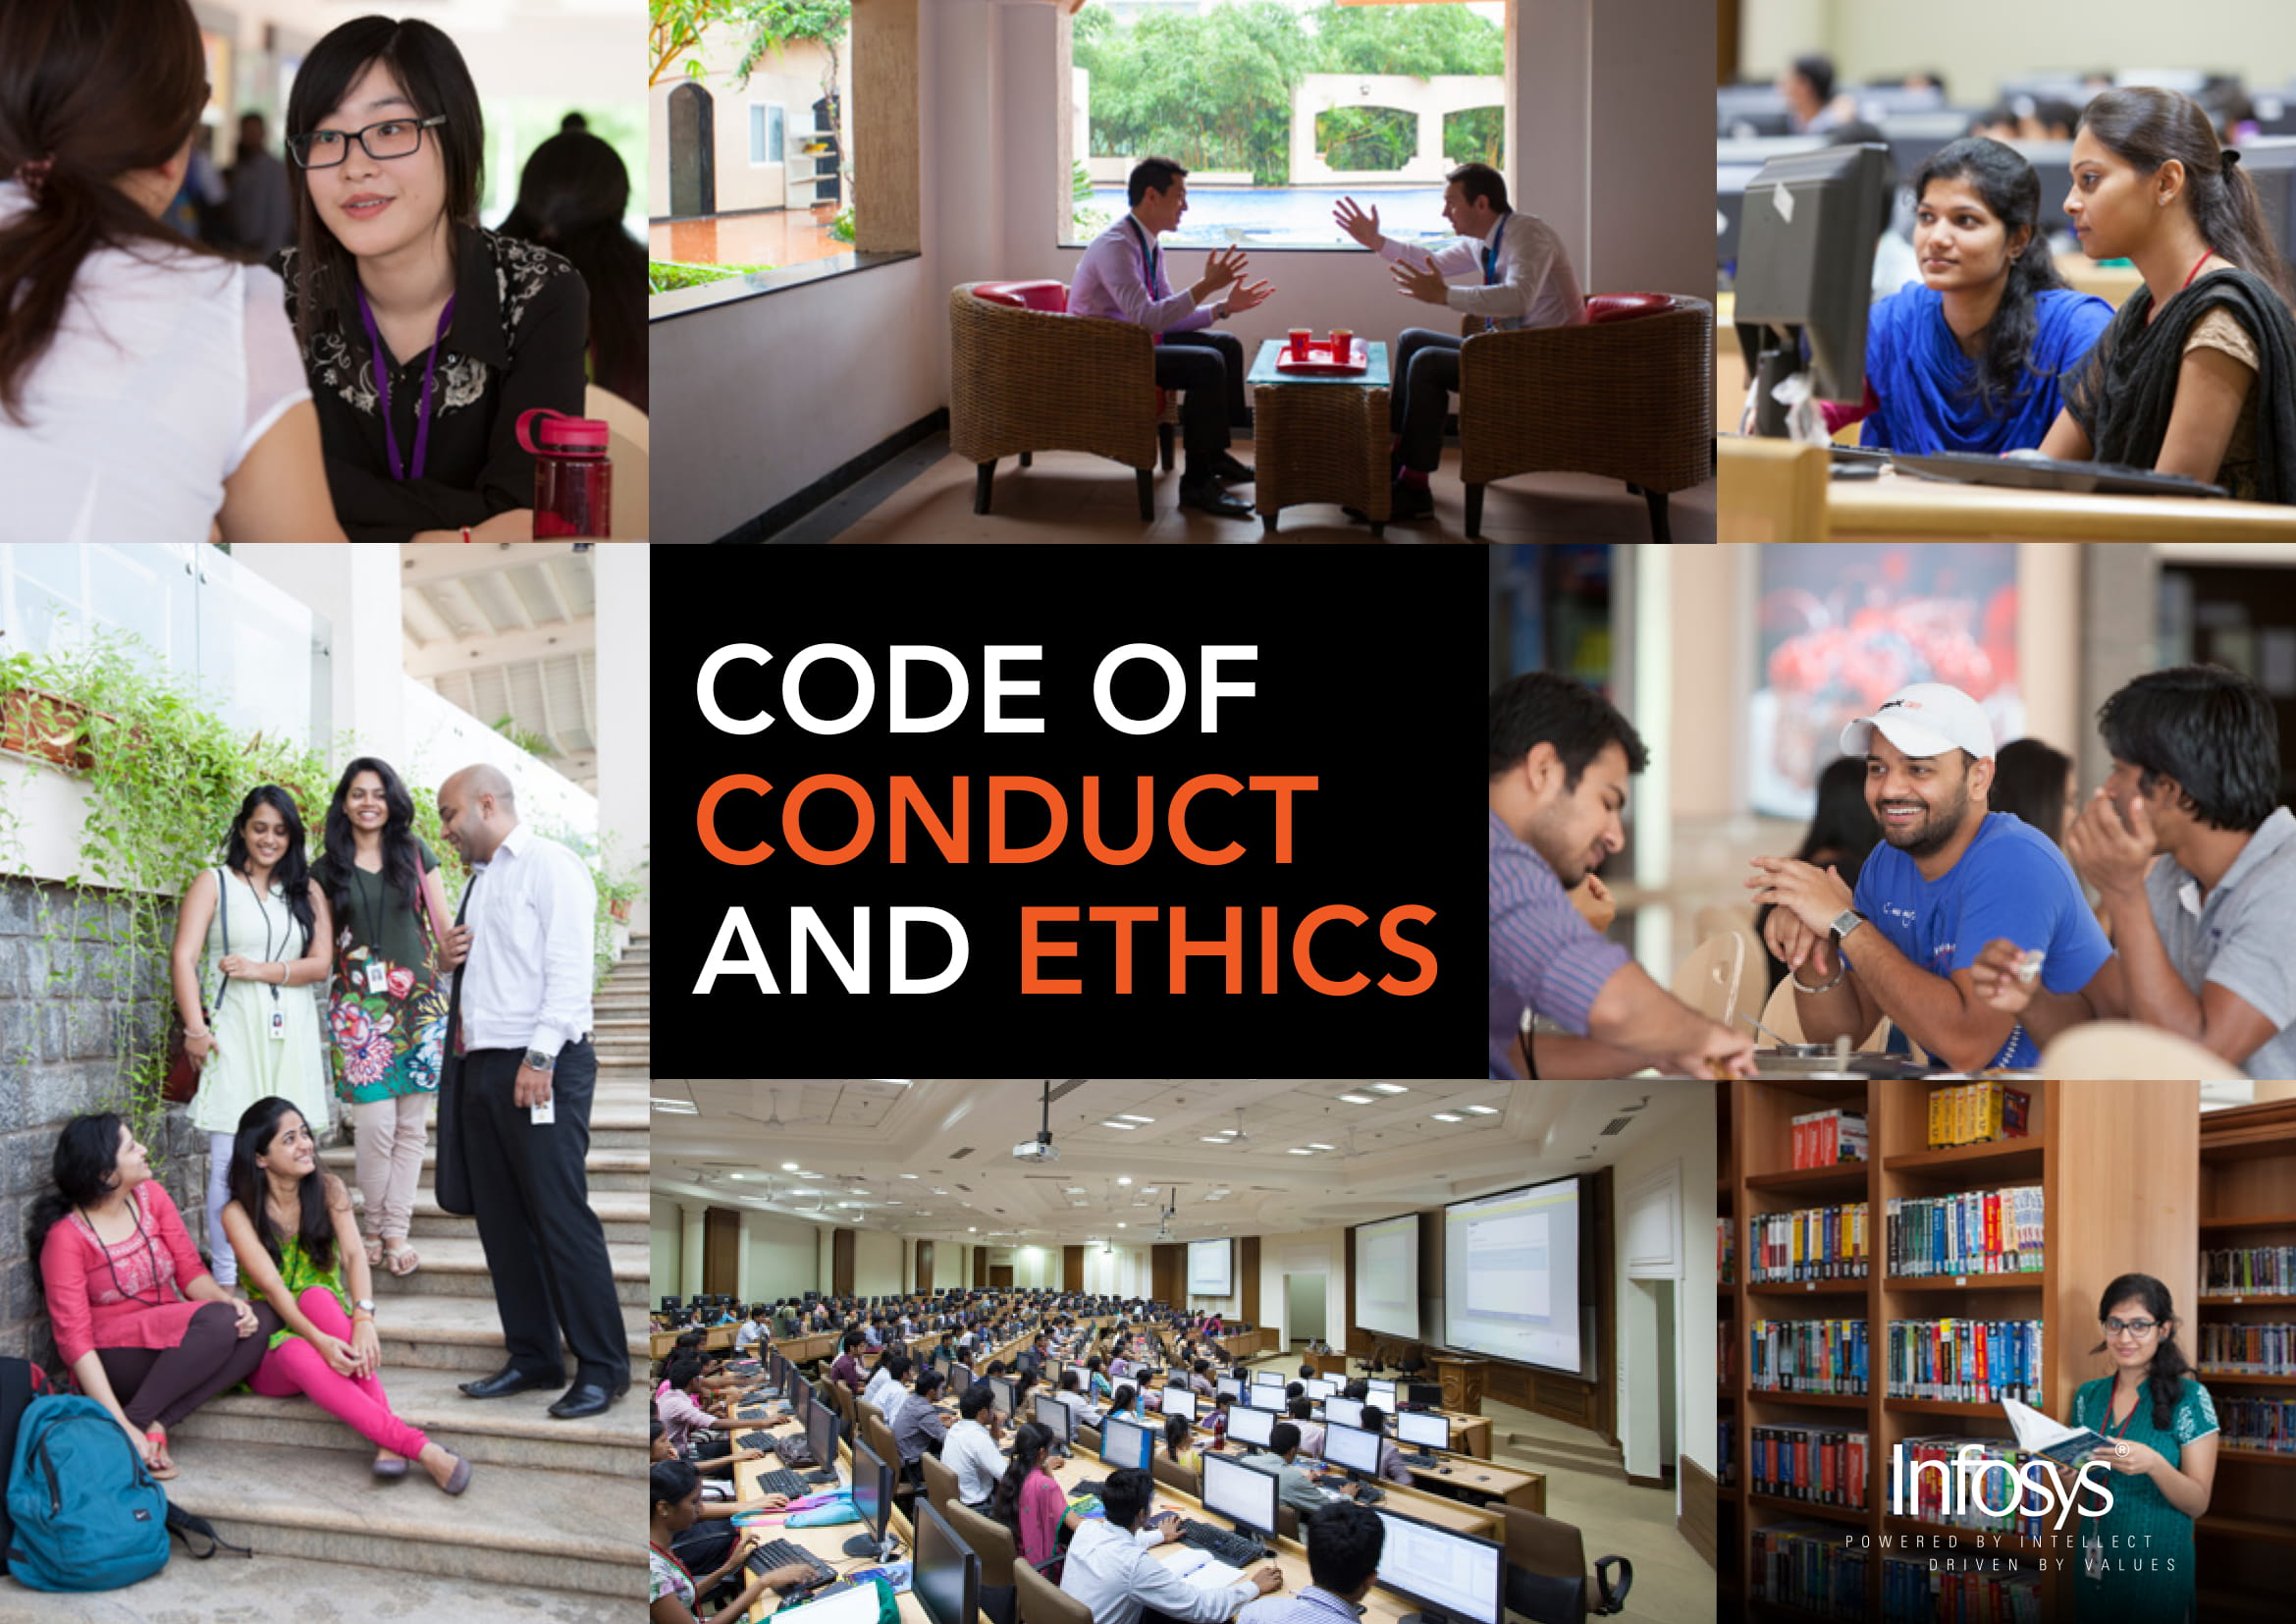 employee work rules code of conduct and ethics example1